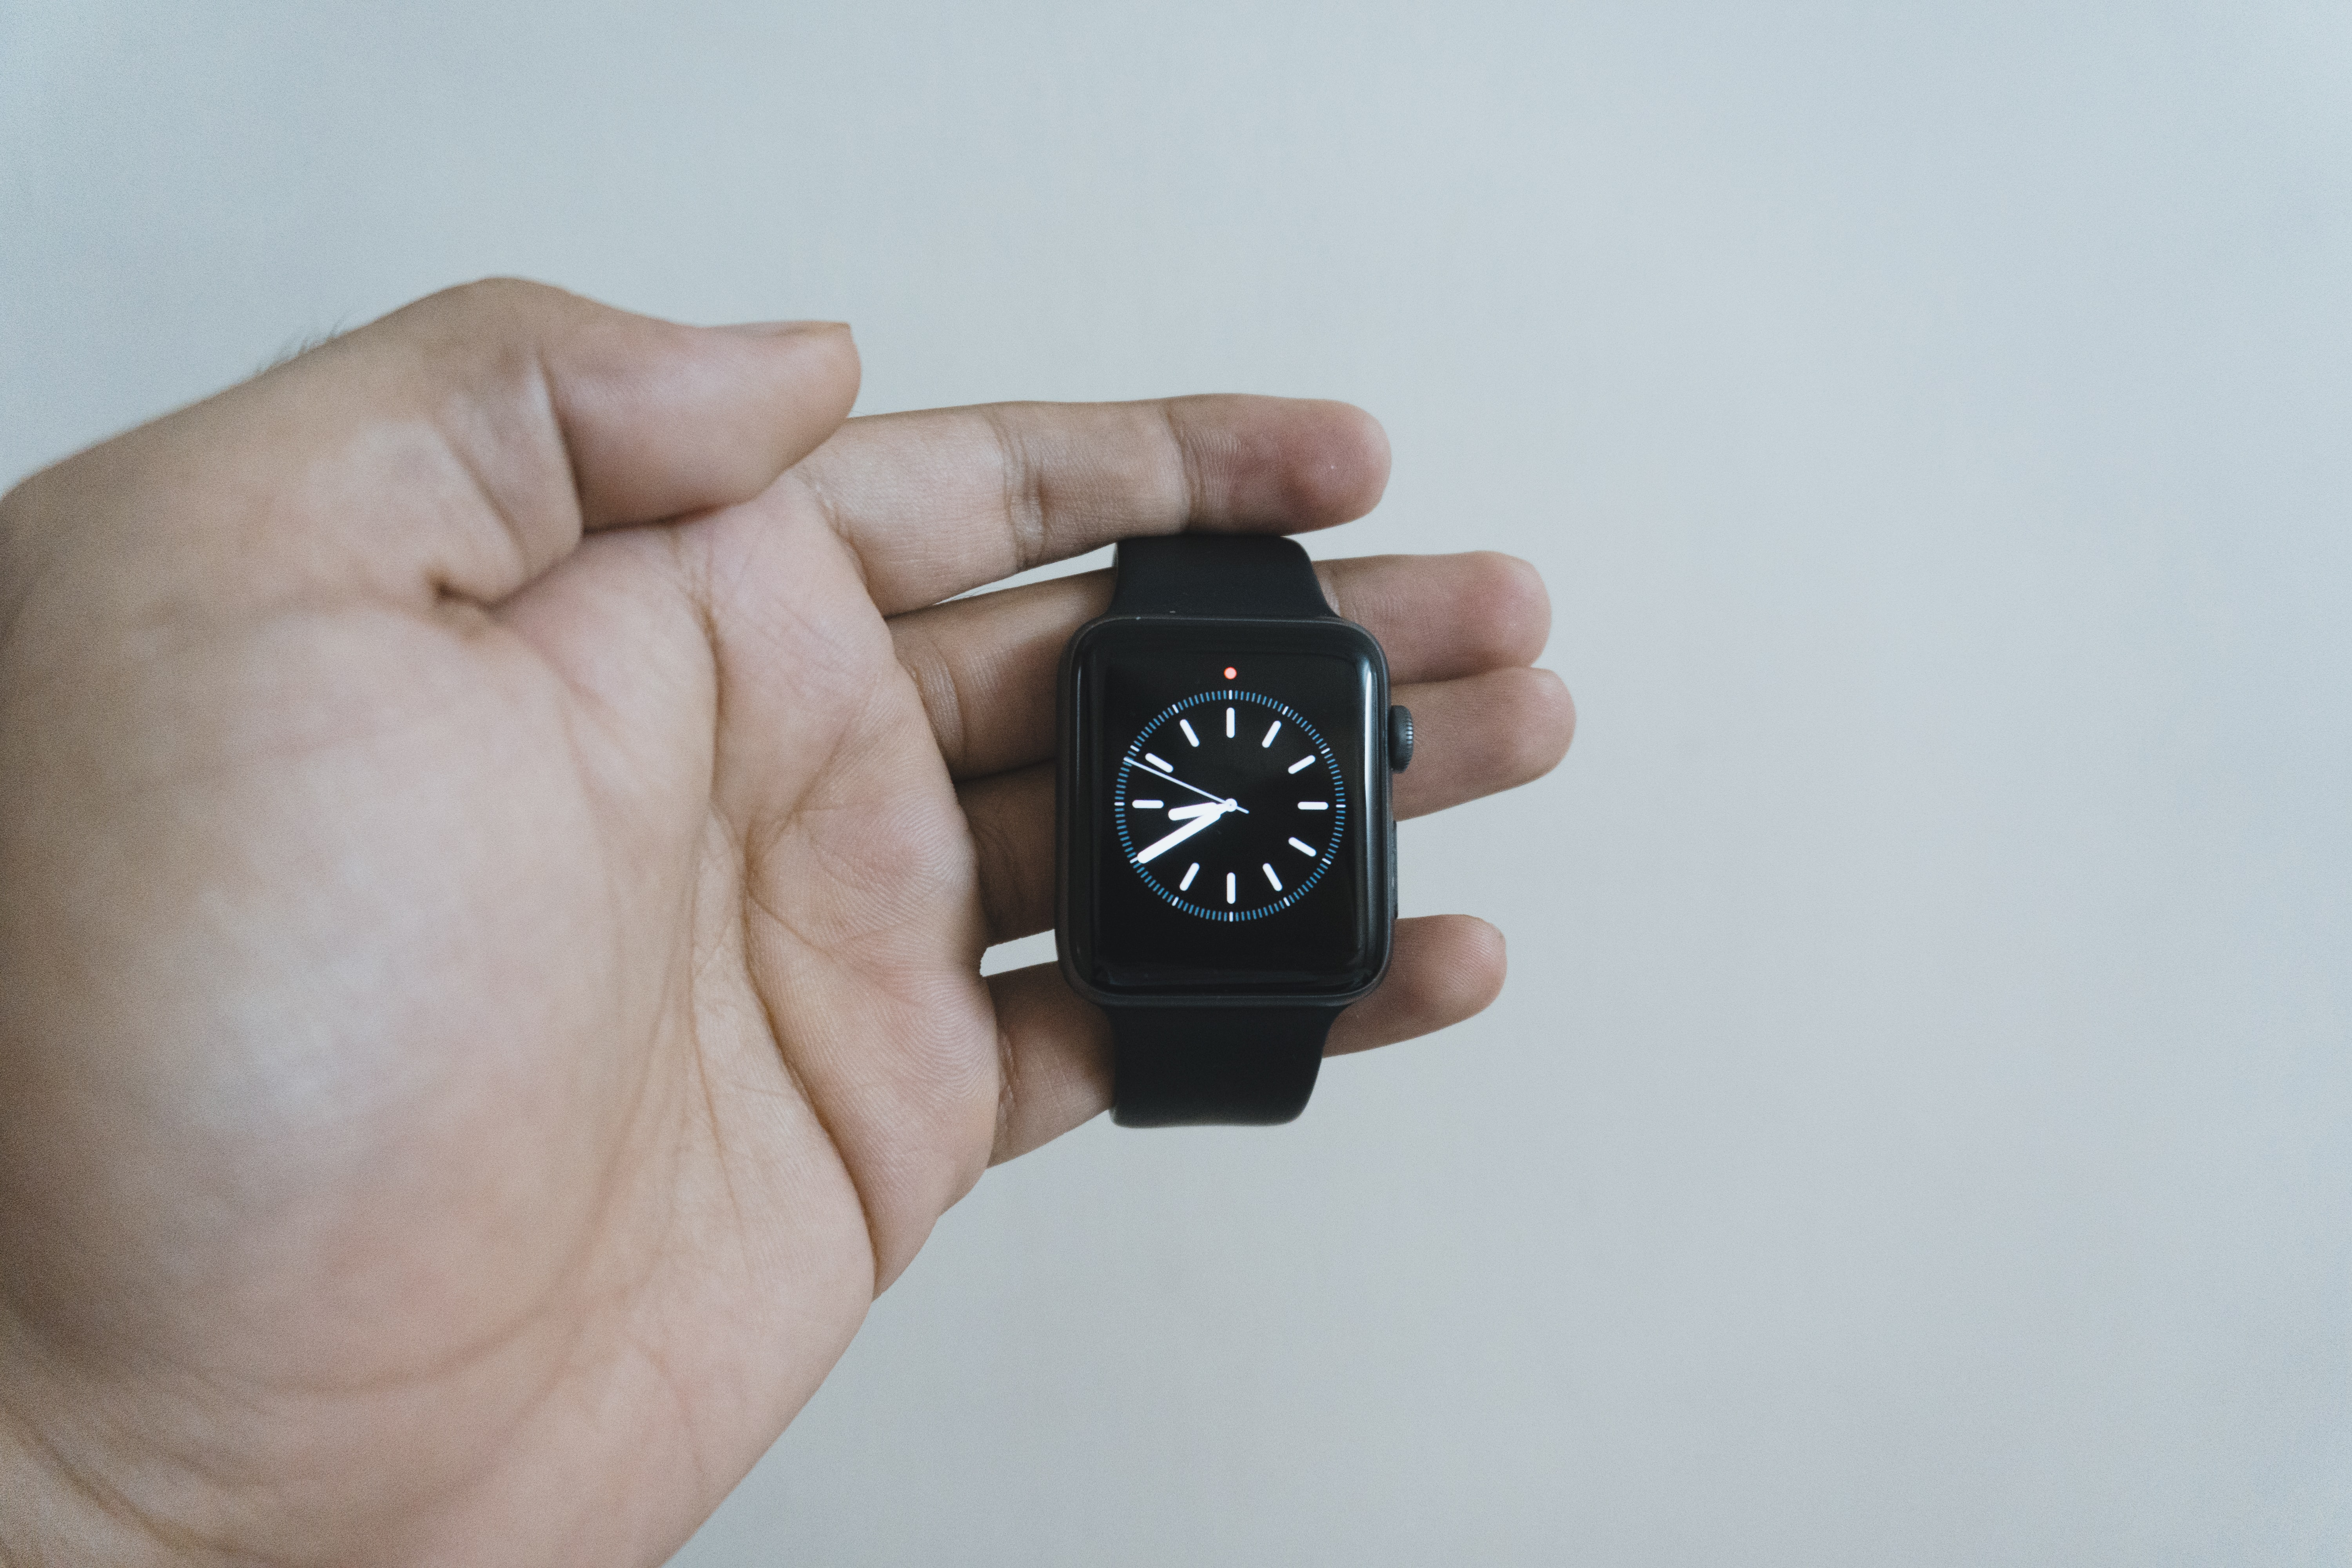 person holding apple watch at 8:40